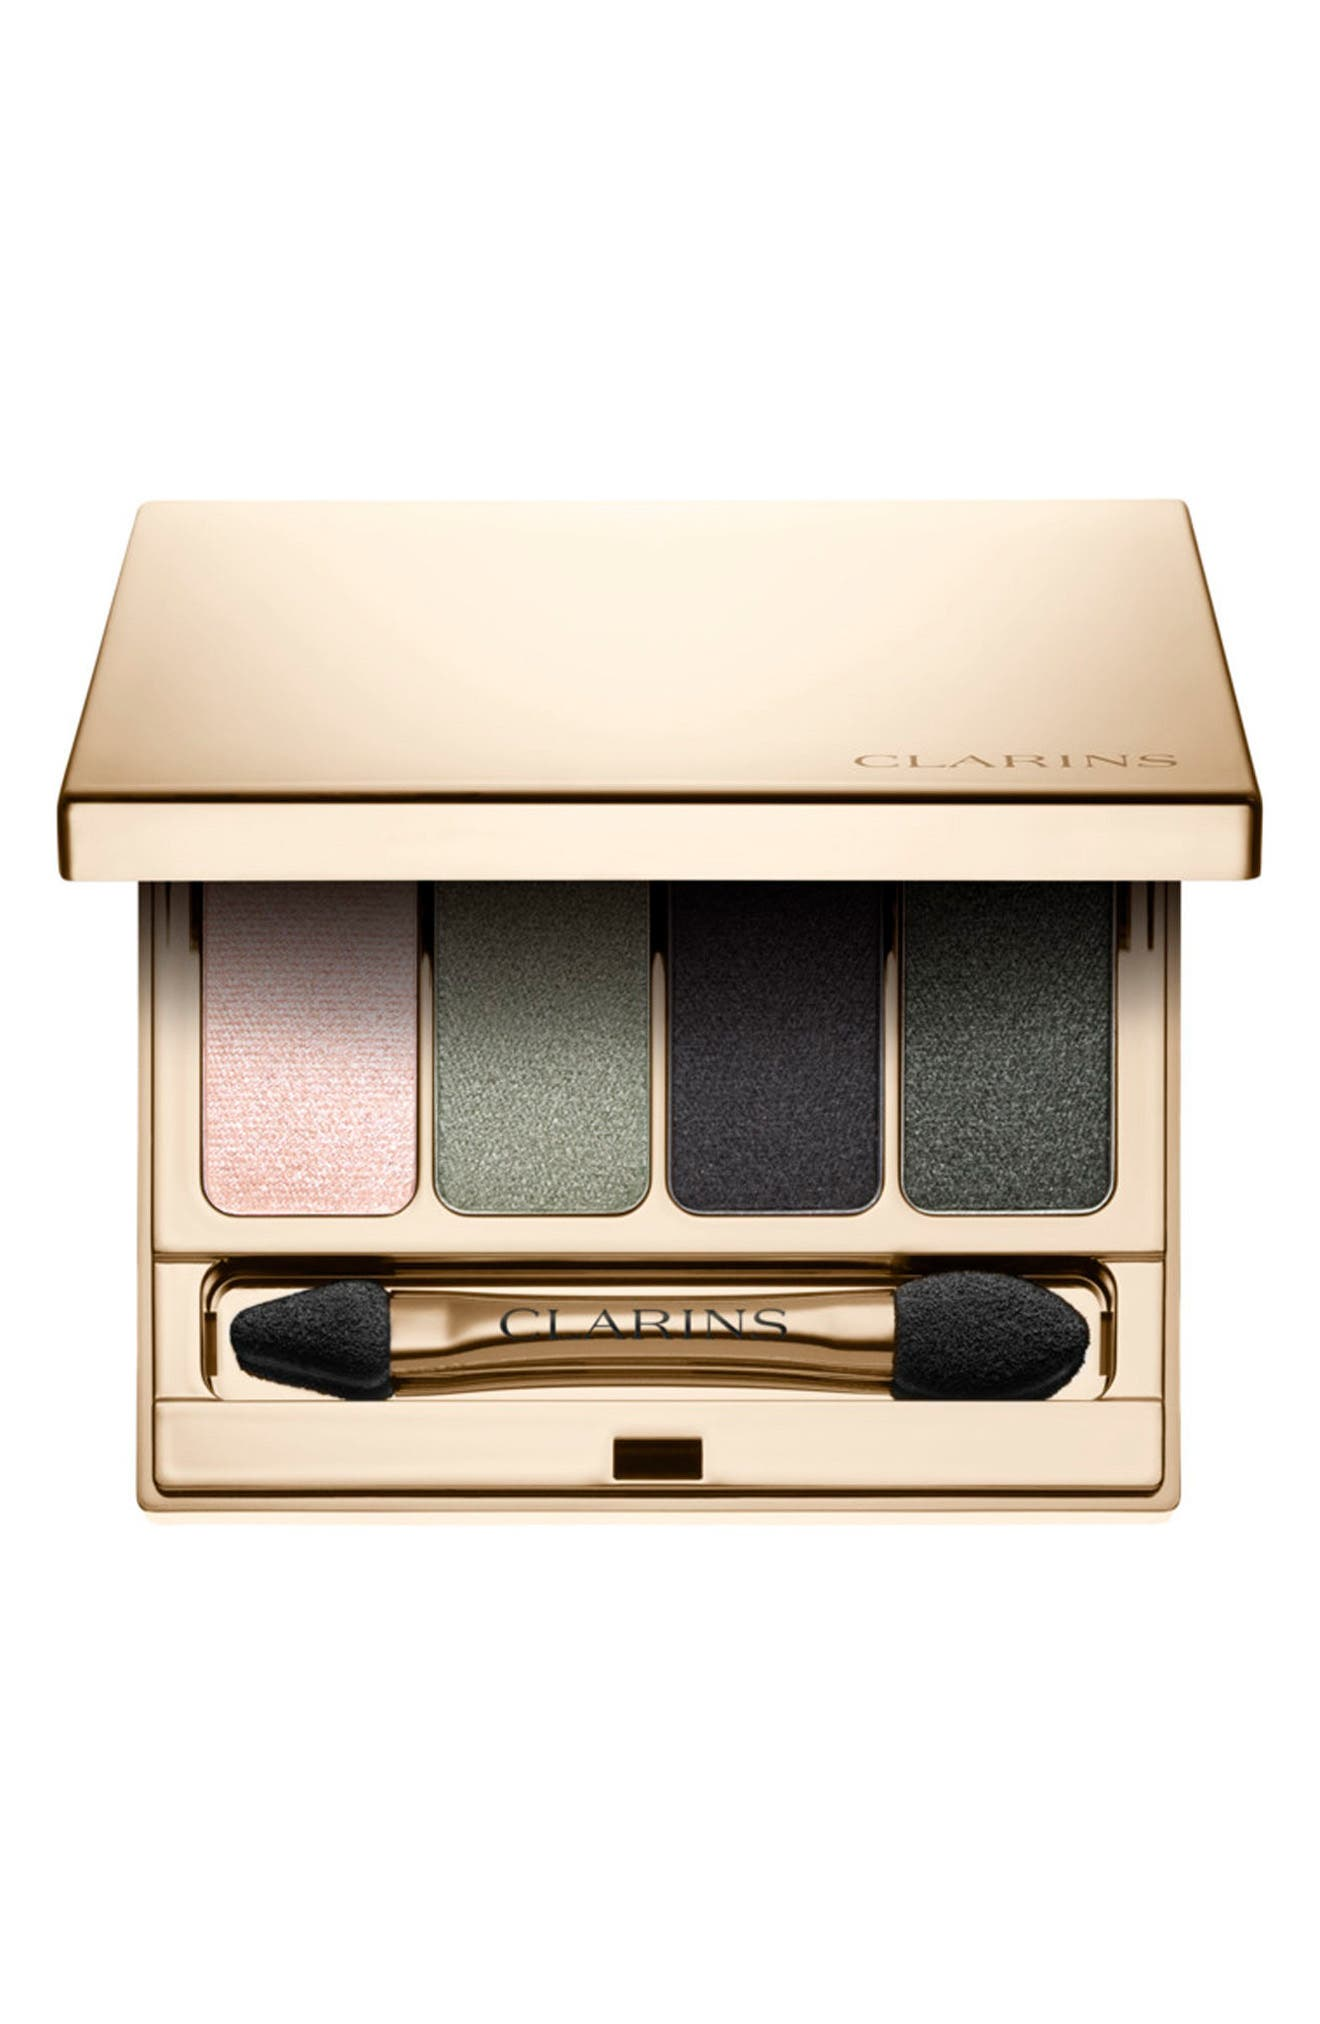 4-Colour Eyeshadow Palette,                             Main thumbnail 1, color,                             06 FOREST